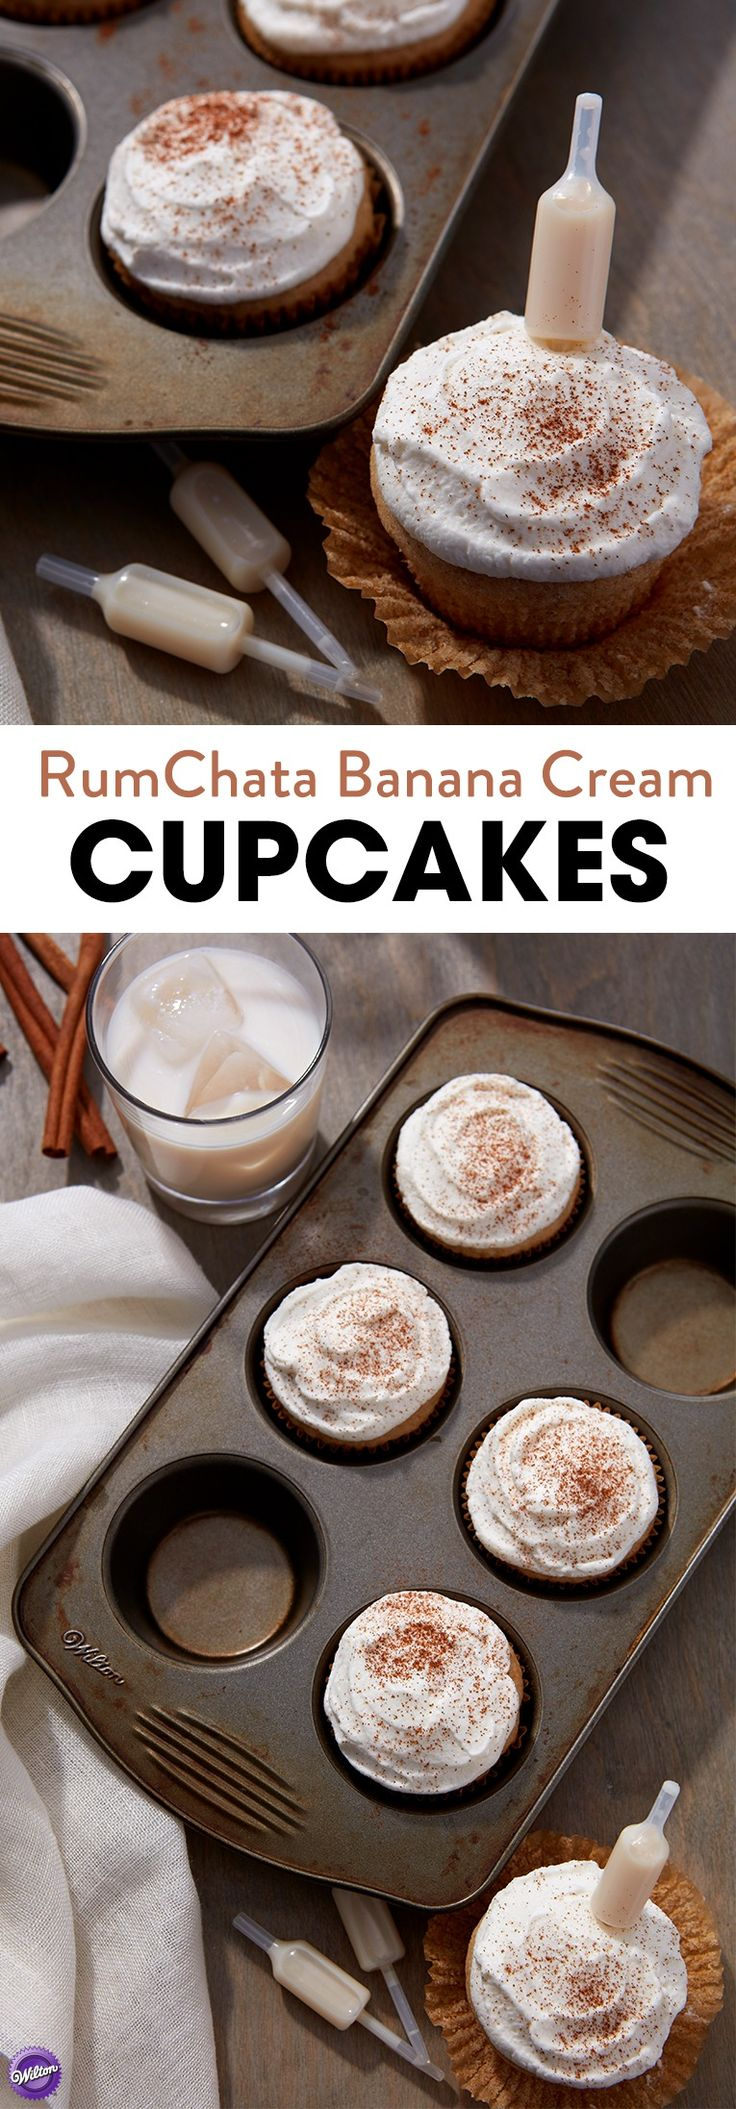 RumChata Banana Cream Cupcakes - Wilton Shot Toppers plus RumChata Banana Cream Cupcakes equal YUM. These moist and fluffy cupcakes only get better once you add a Shot Topper of RumChata to get that special cinnamon-kick. This recipe is the perfect addition to any girls' night, bachelorette party, wedding party or brunch. This recipe is all you need for a fun, infused burst of flavor.